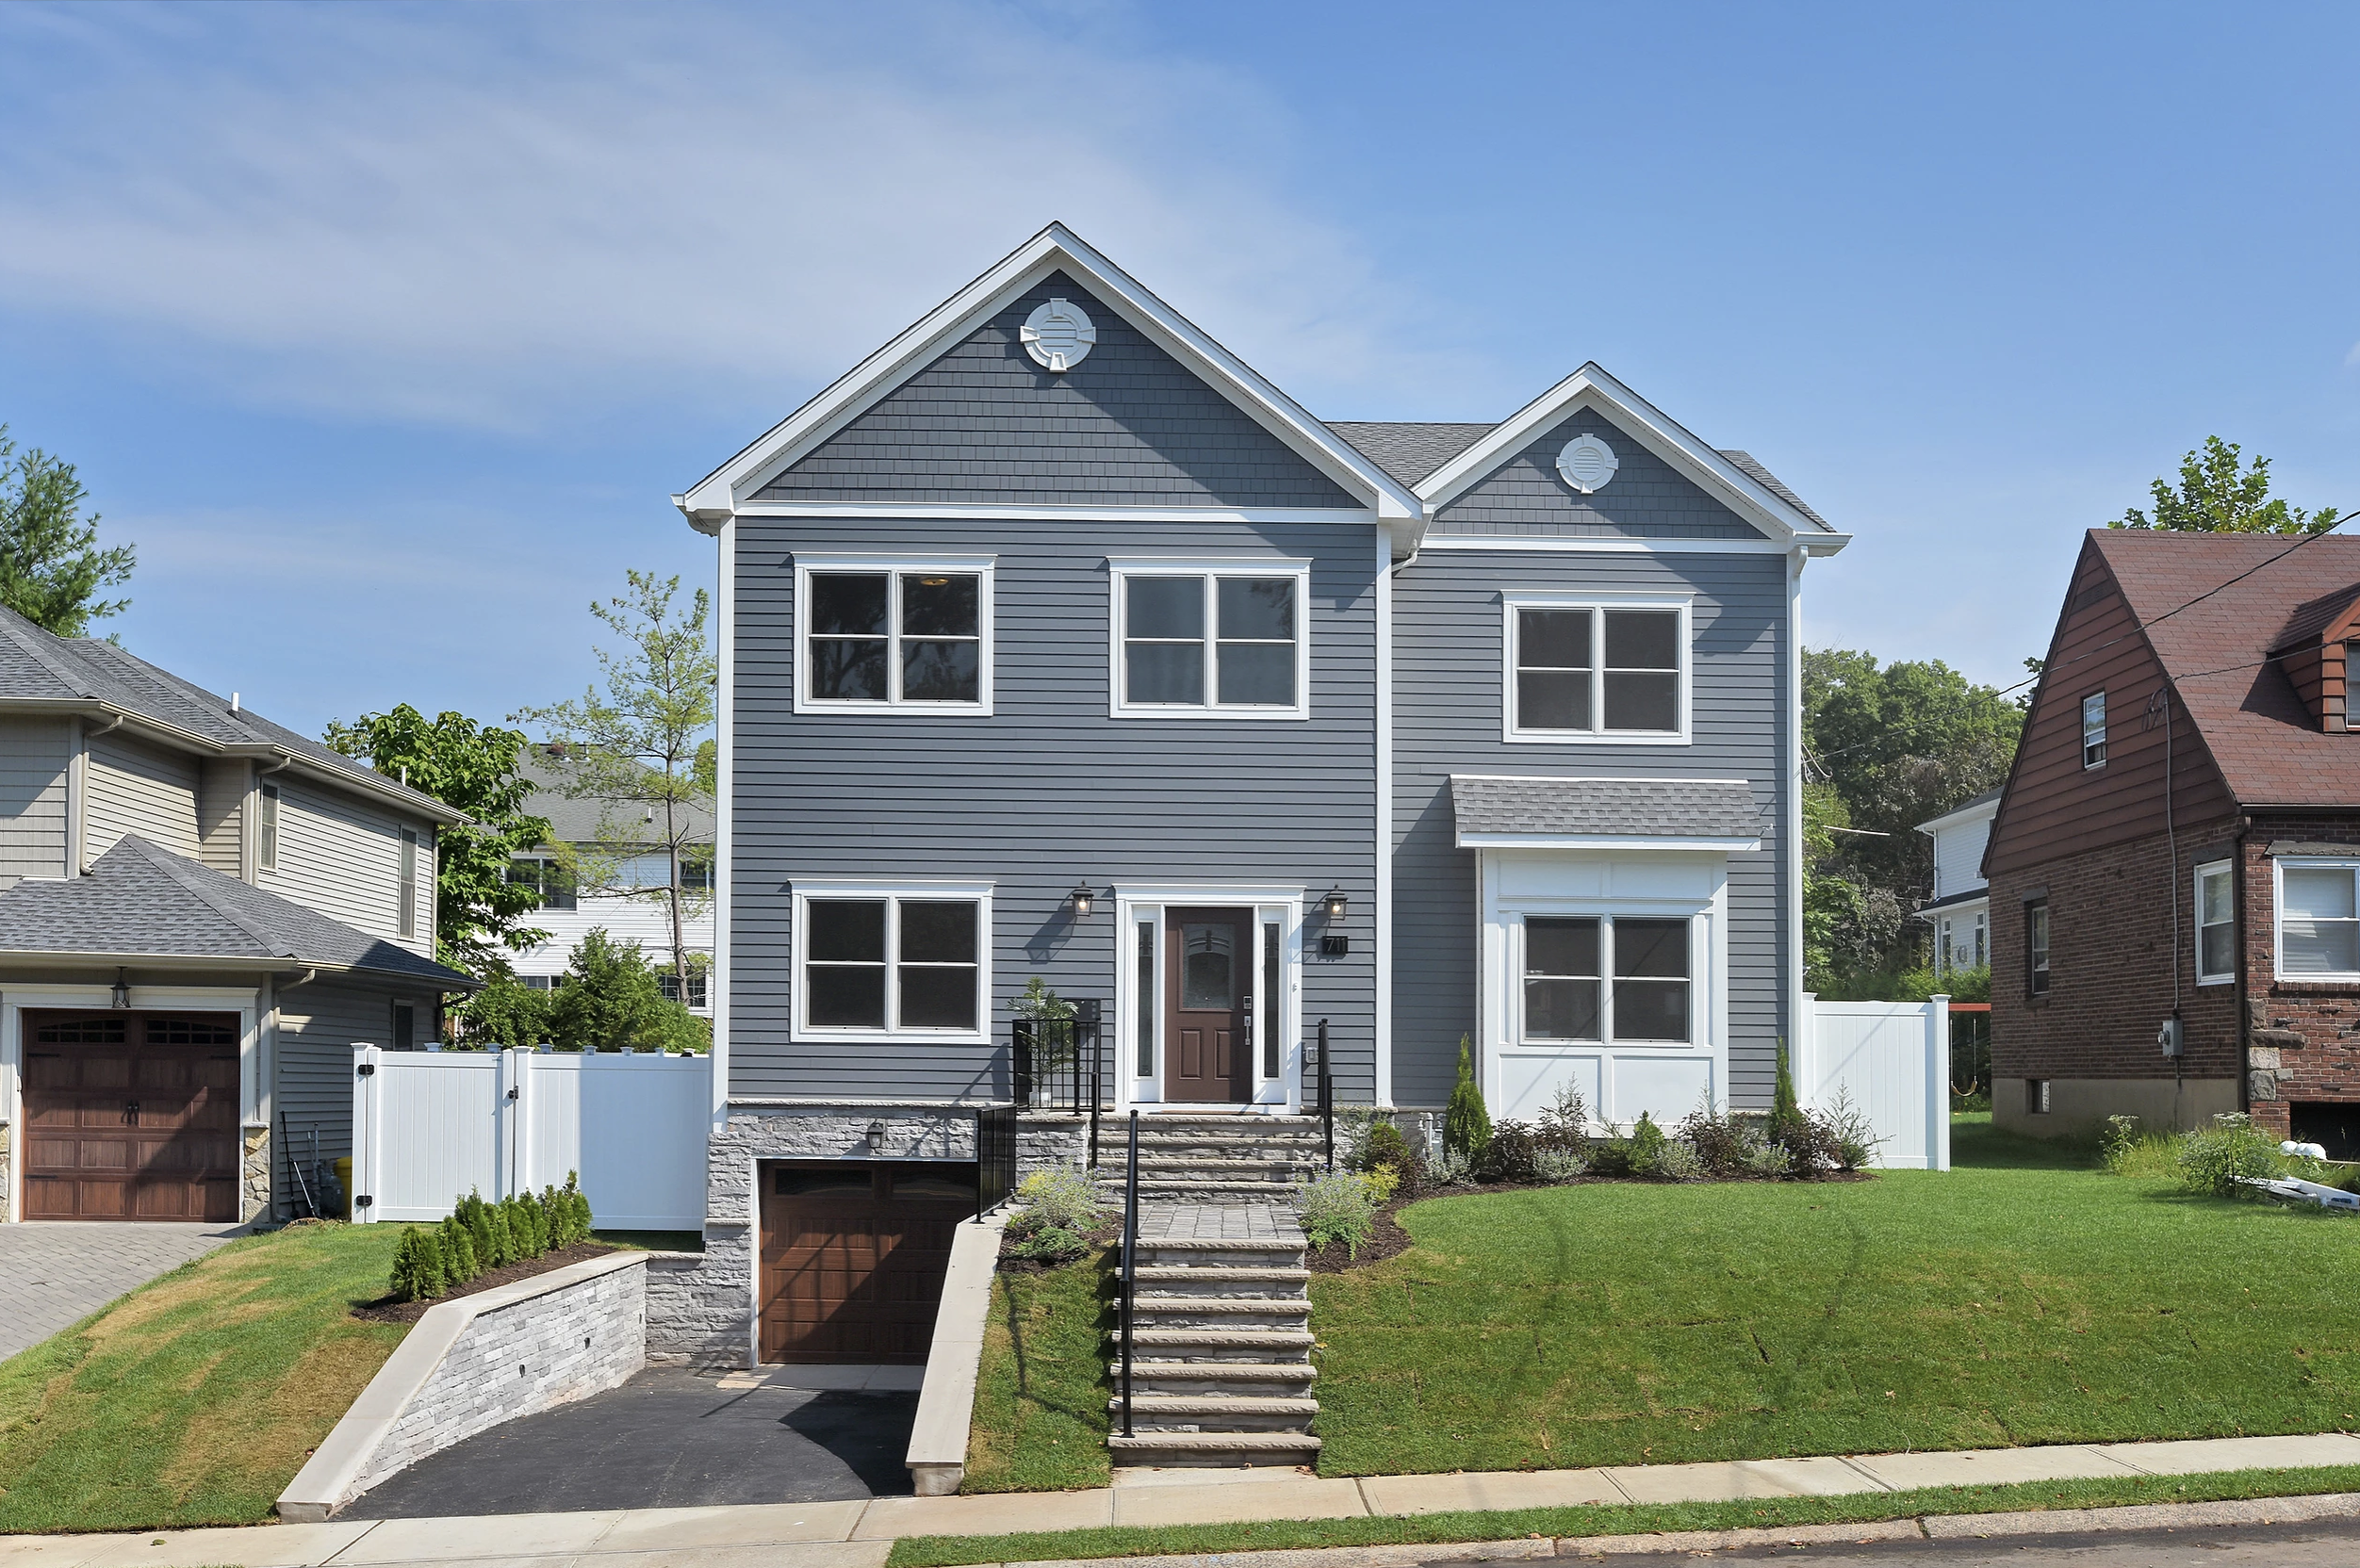 House flipping in New Jersey continues throughout its downtown and surrounding areas as new investment opportunities emerge.